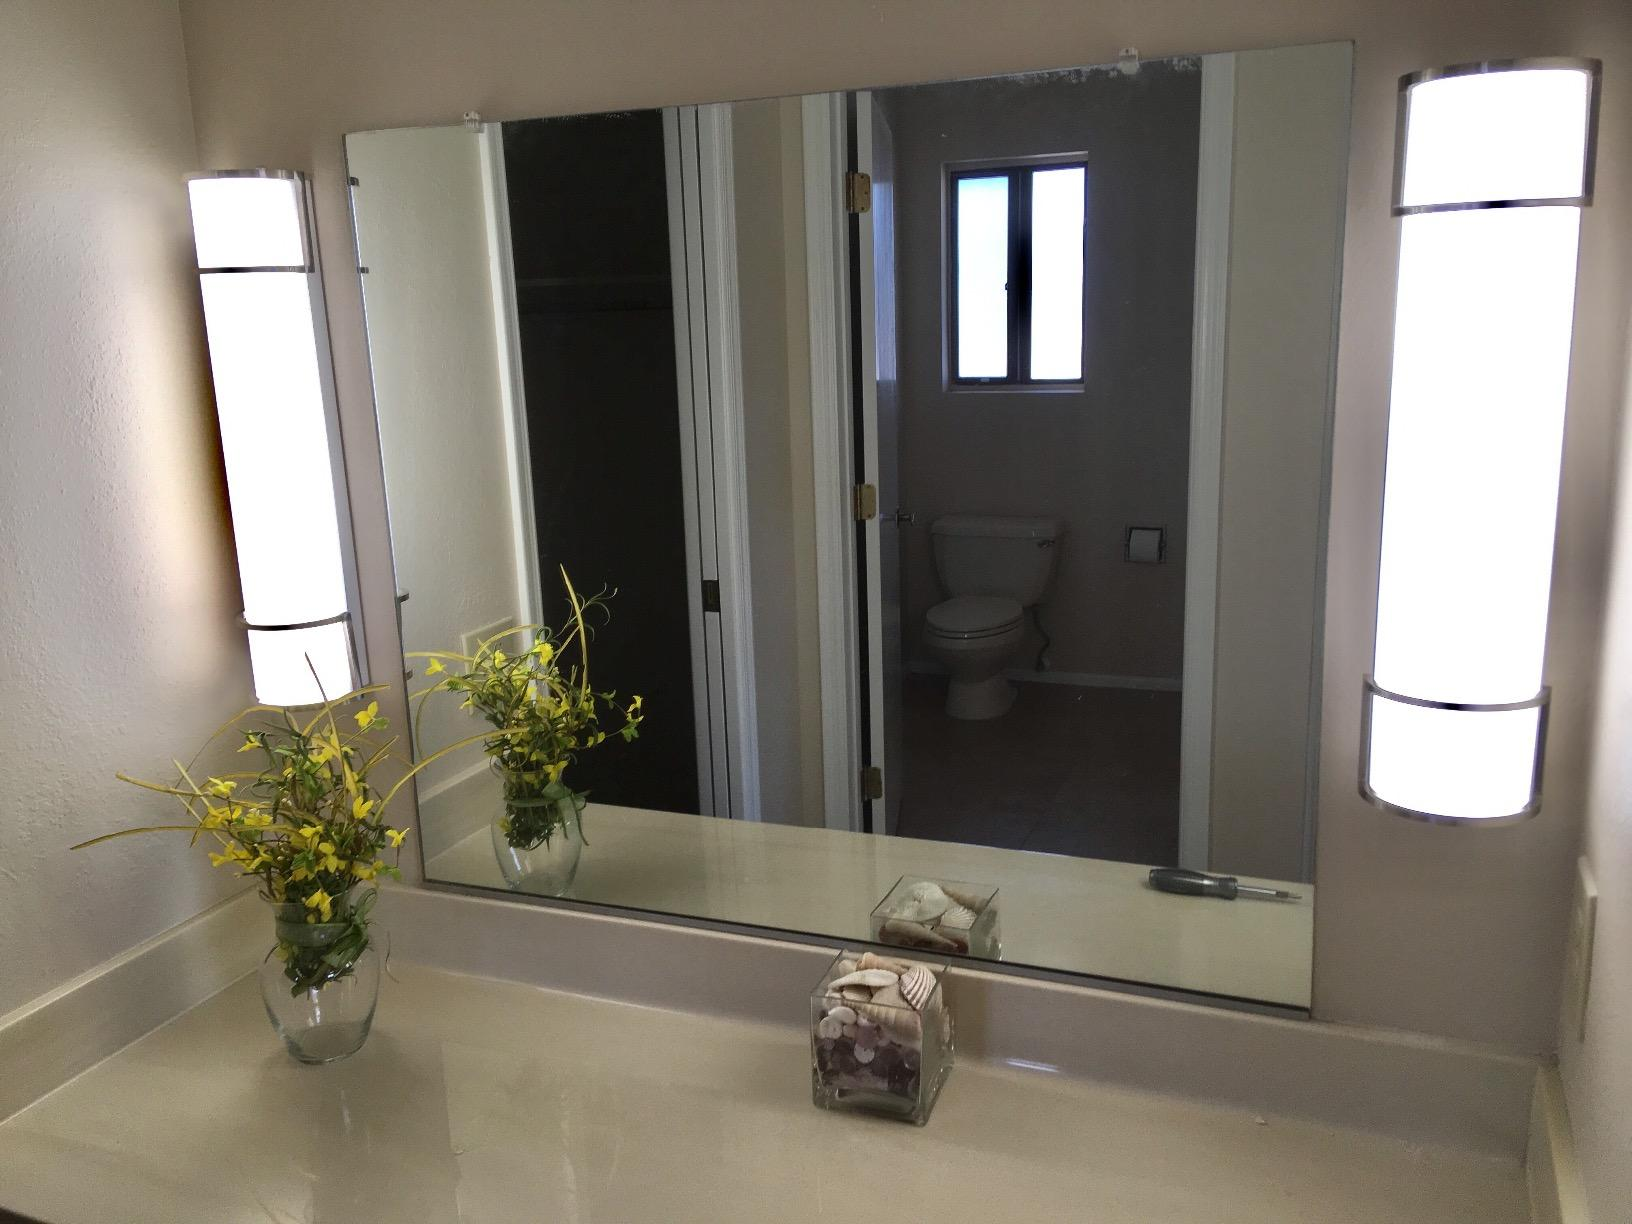 Lighten Up Your Bathroom with LED Lighting